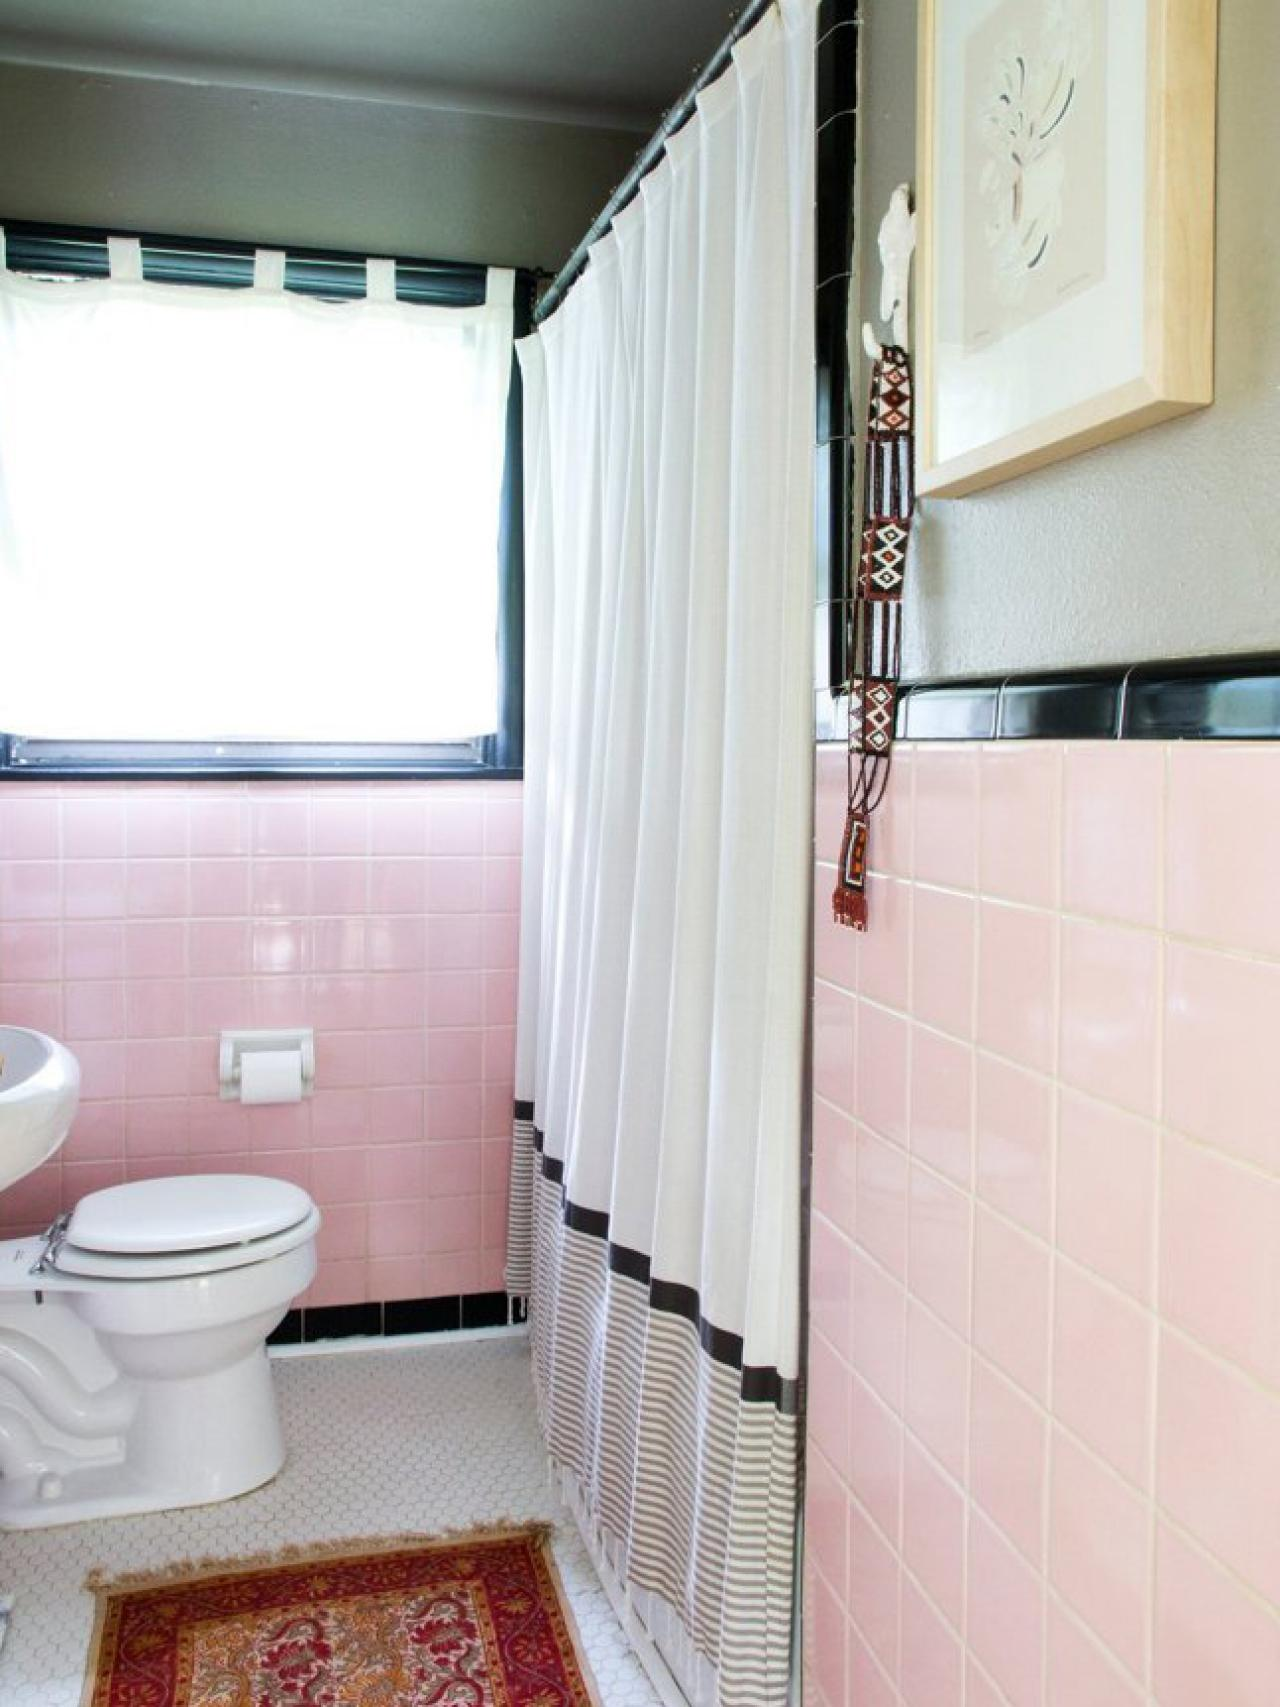 Reasons to Love Retro Pink-Tiled Bathrooms | HGTV\'s Decorating ...